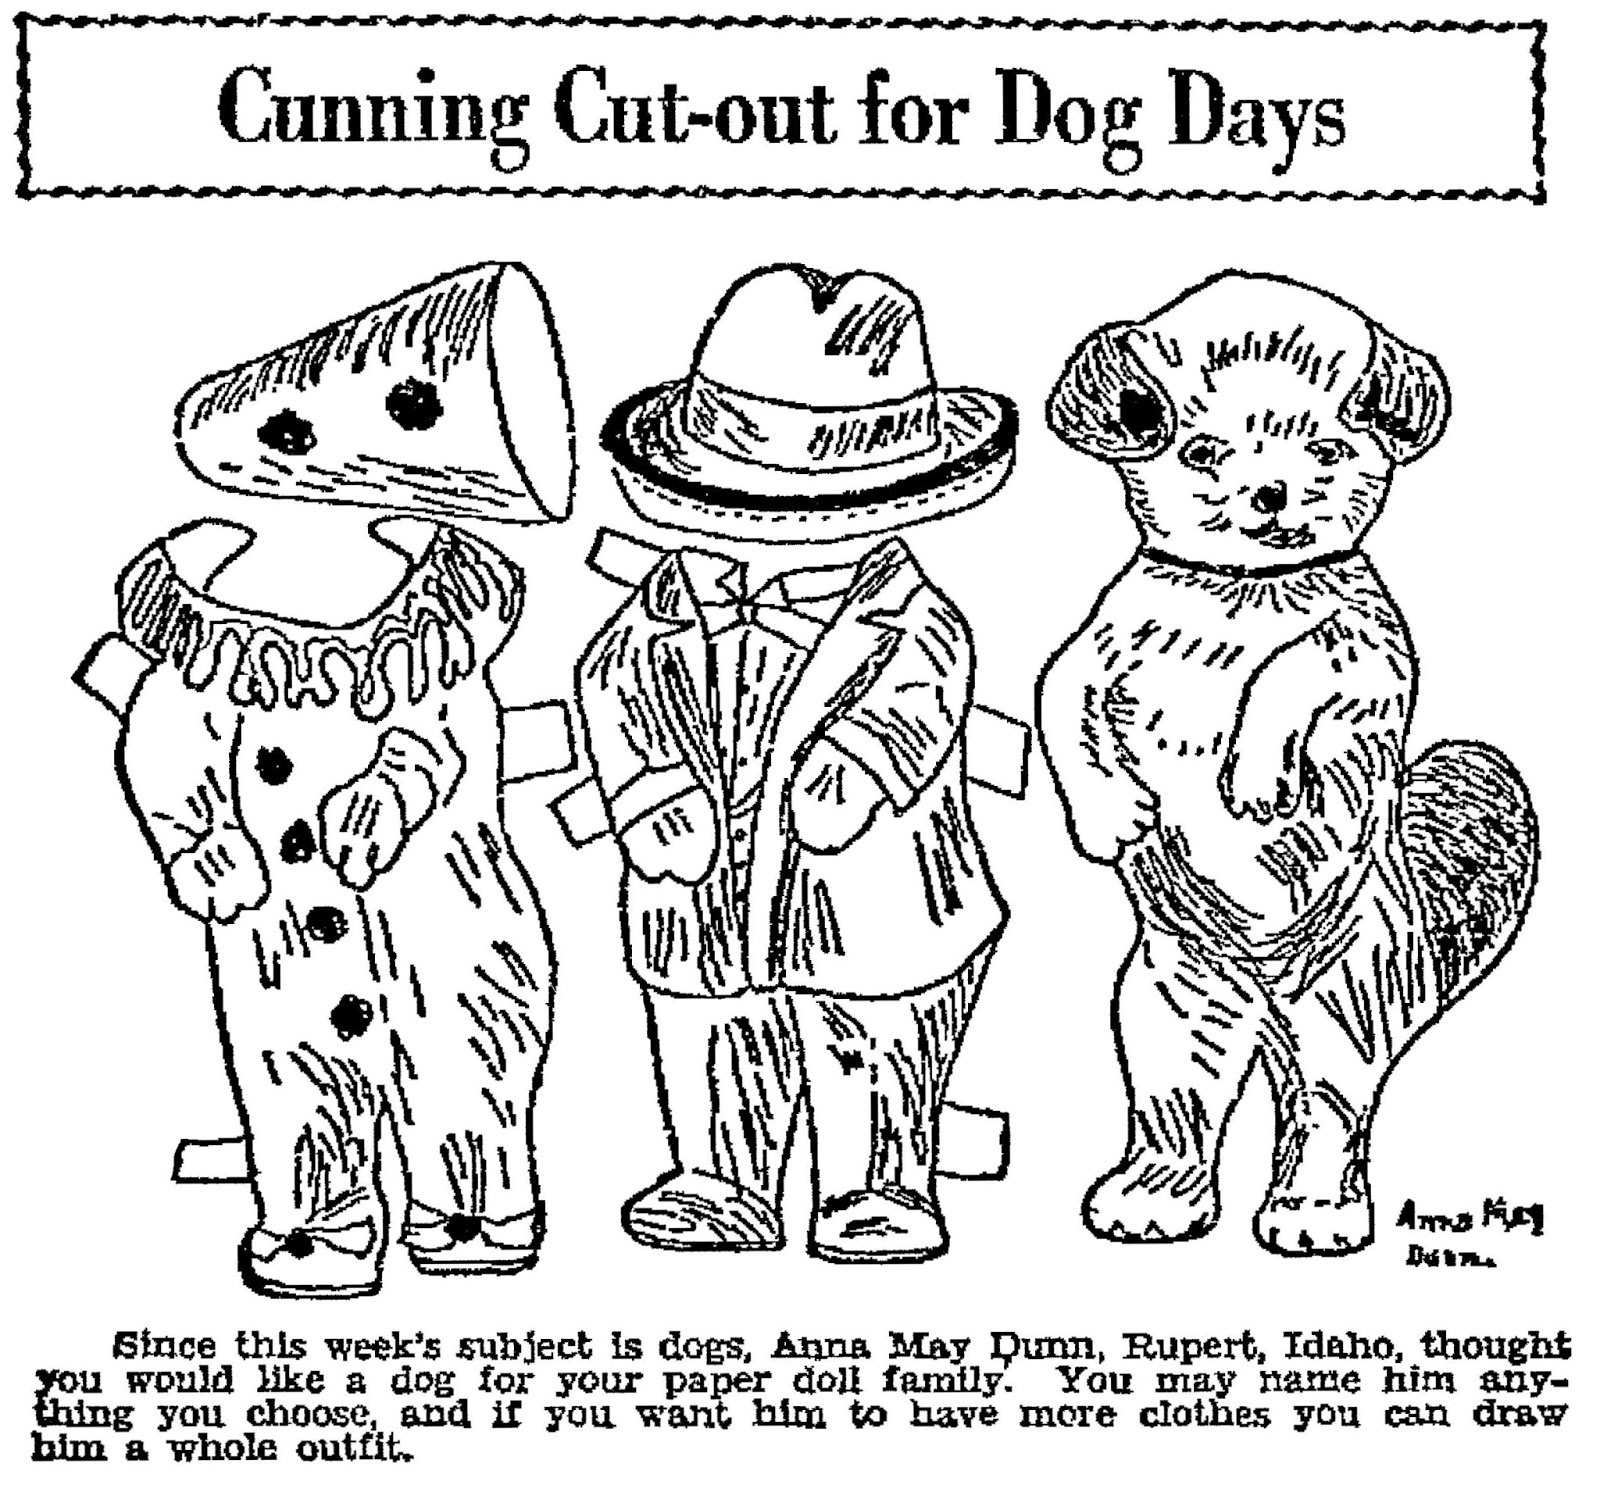 Mostly Paper Dolls Too!: Cunning Cut-Out for Dog Days